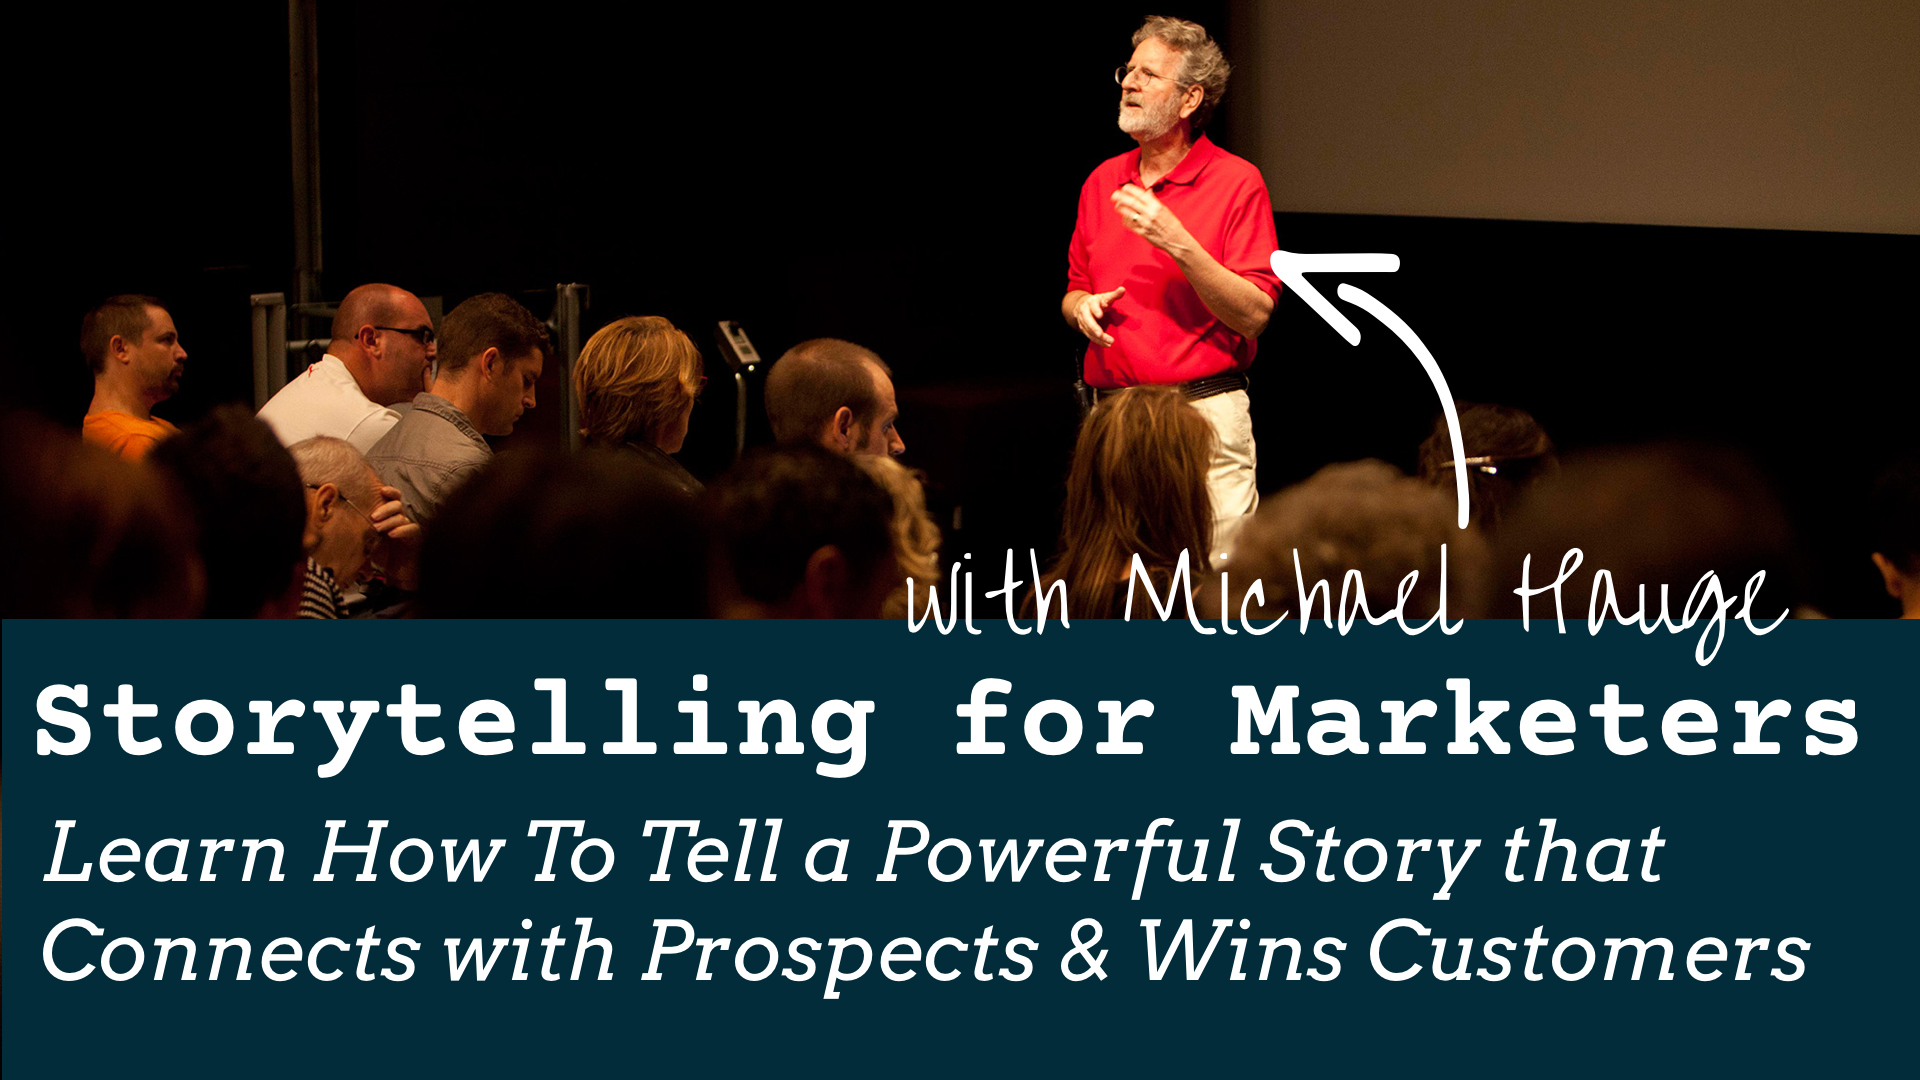 Storytelling for Marketers | Tell a Powerful Story that Connects